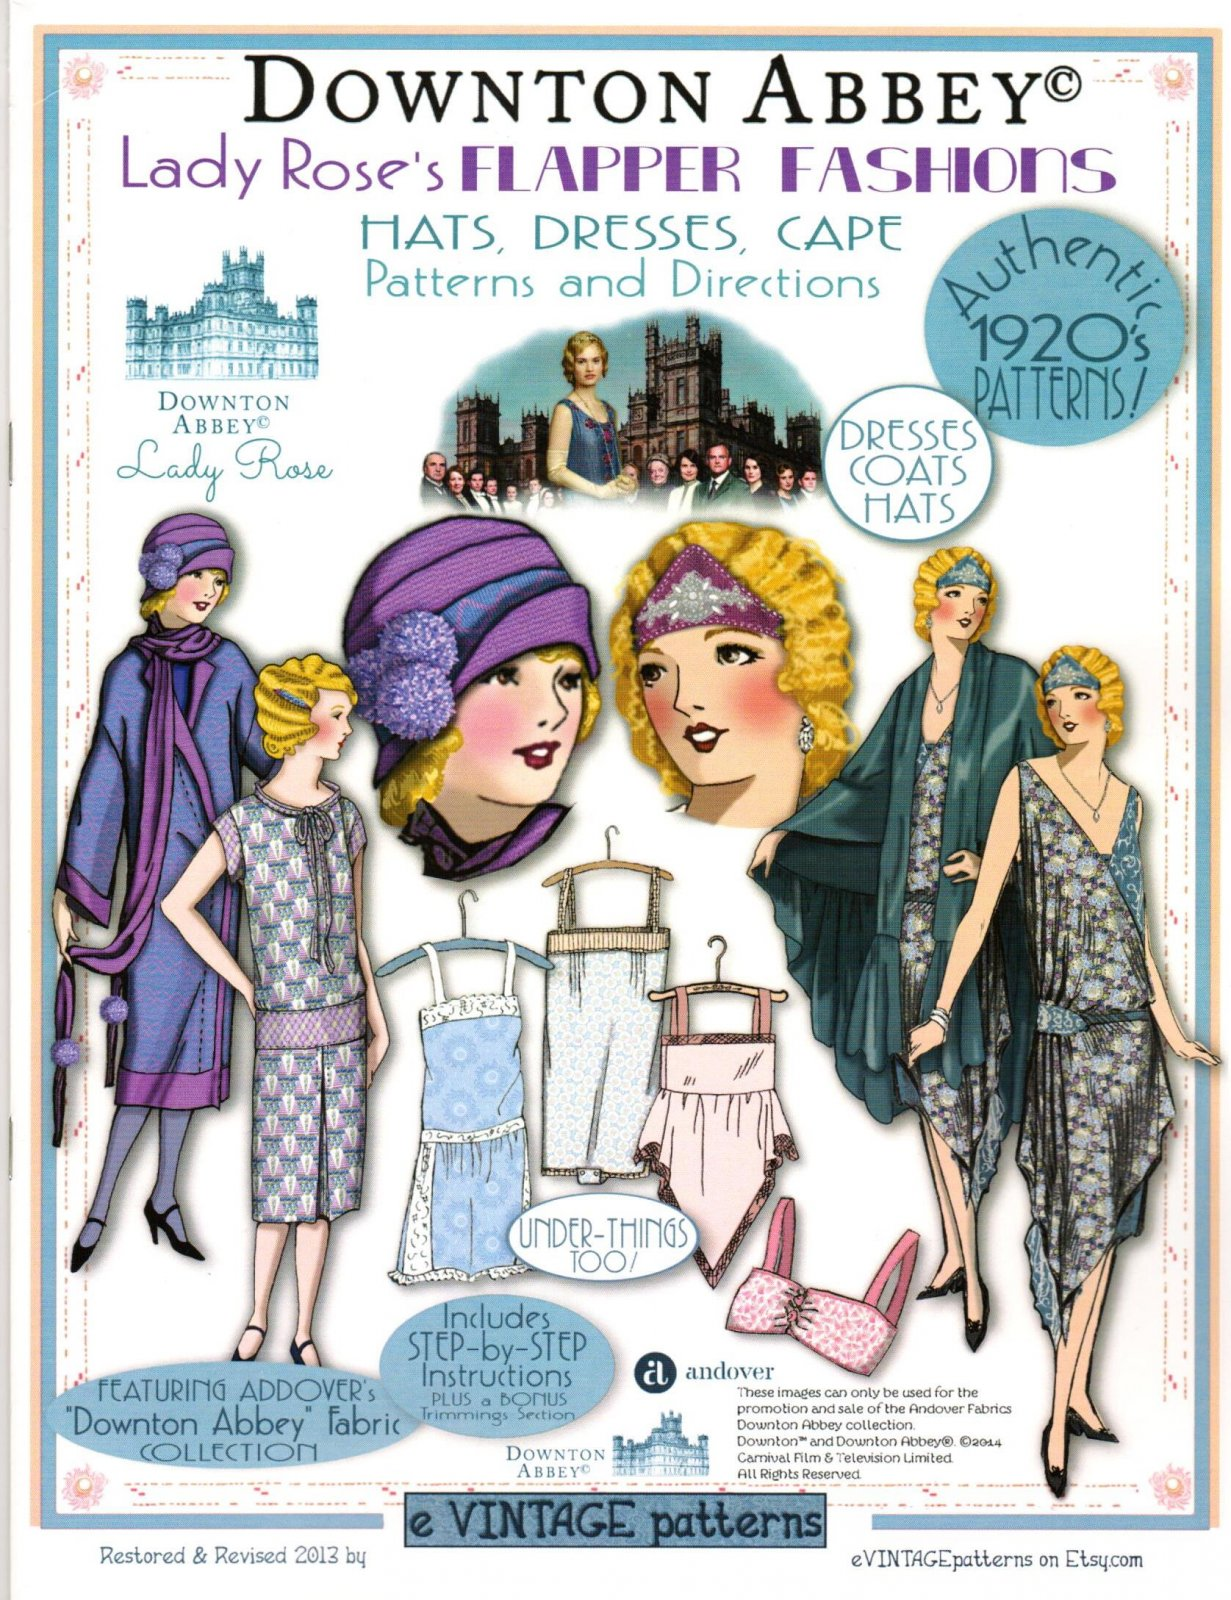 Lady Roses Flapper Fashions <br> The Downton Abbey Collection